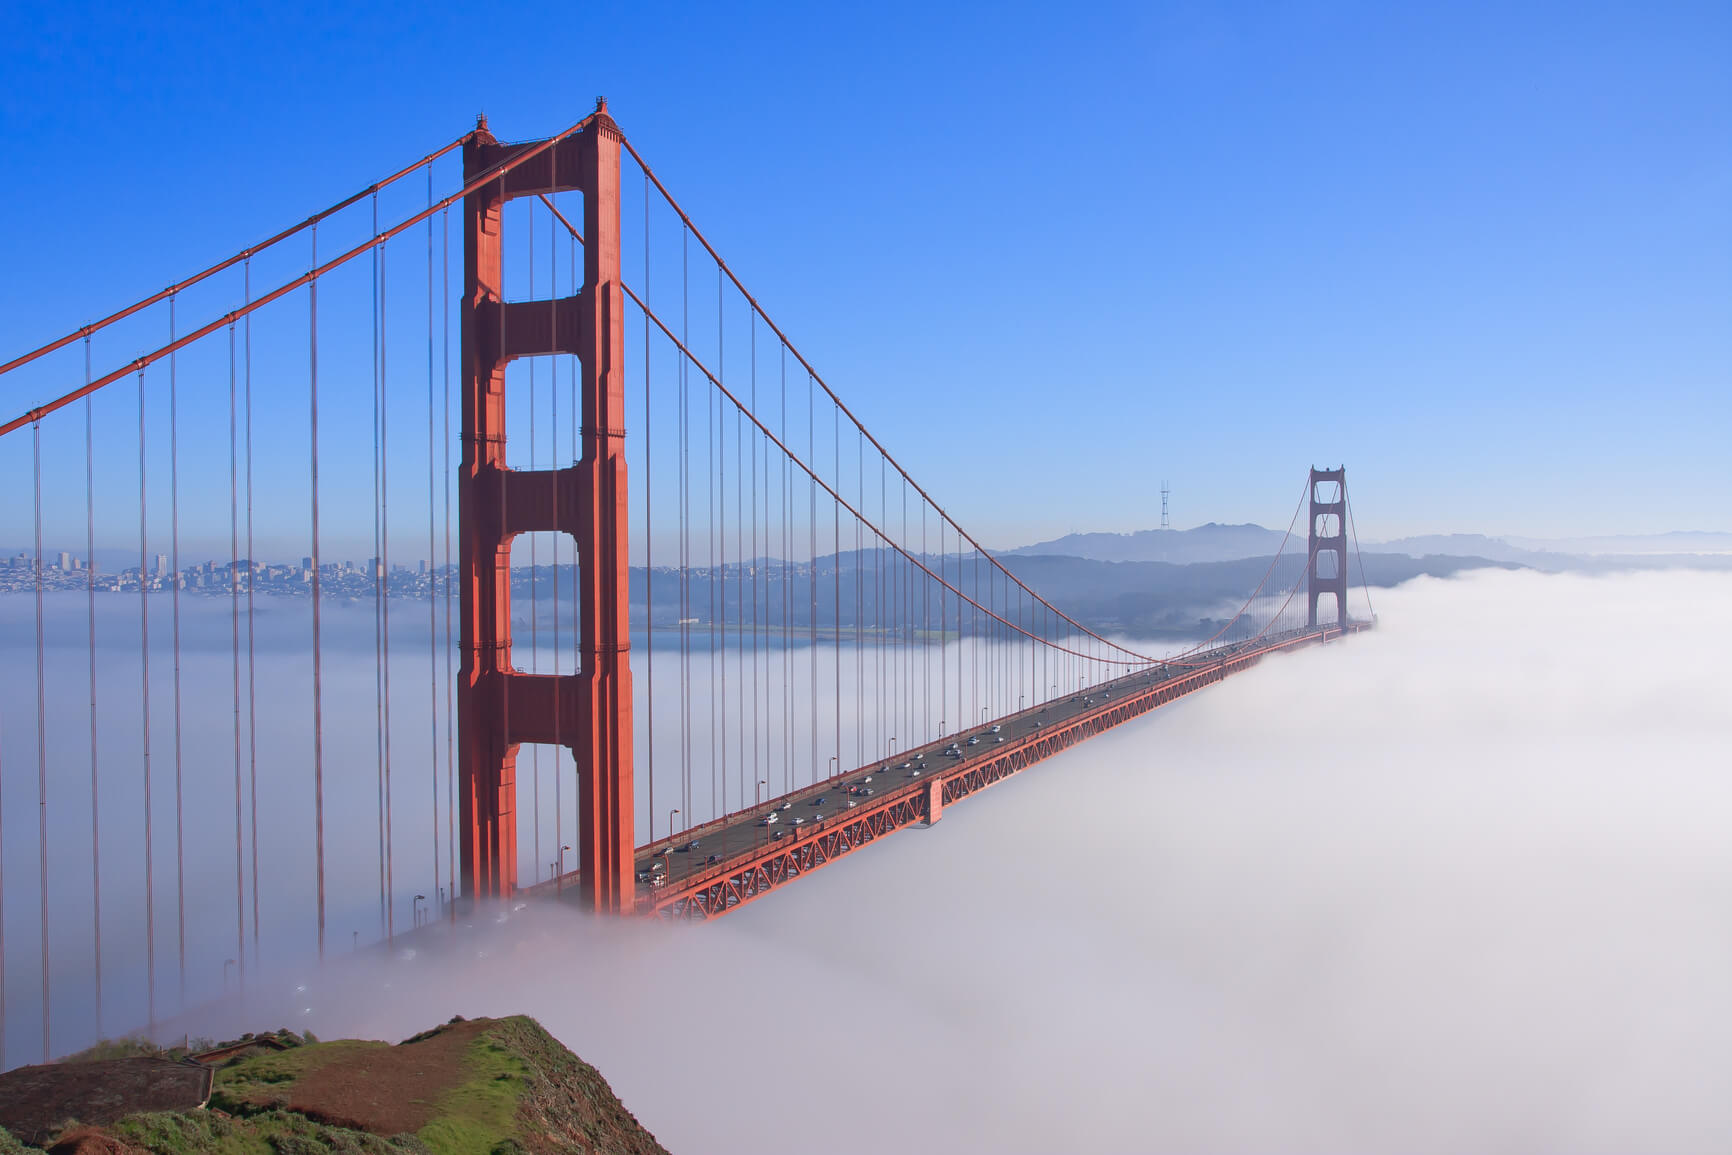 XMAS & NEW YEAR: Cairo, Egypt to San Francisco, USA for only $691 USD roundtrip (Nov-Jul dates)